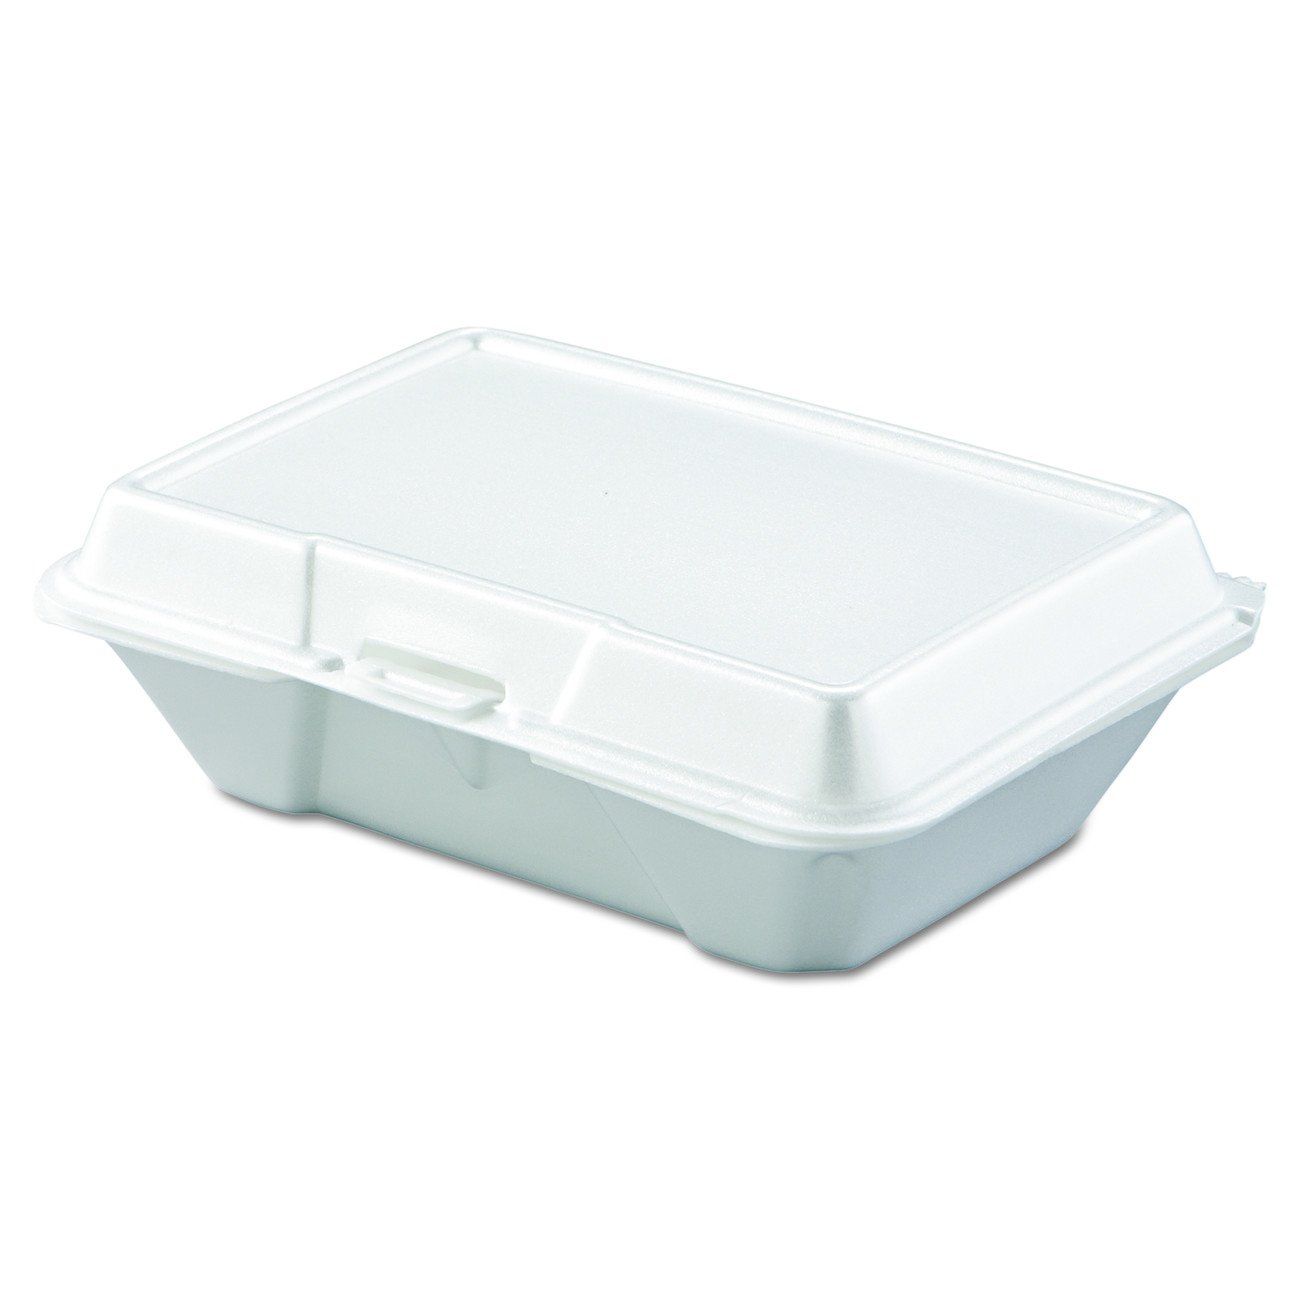 Dart 205HT1 All Purpose Perforated Foam Hinged Container, 9 X 6 in (Case of